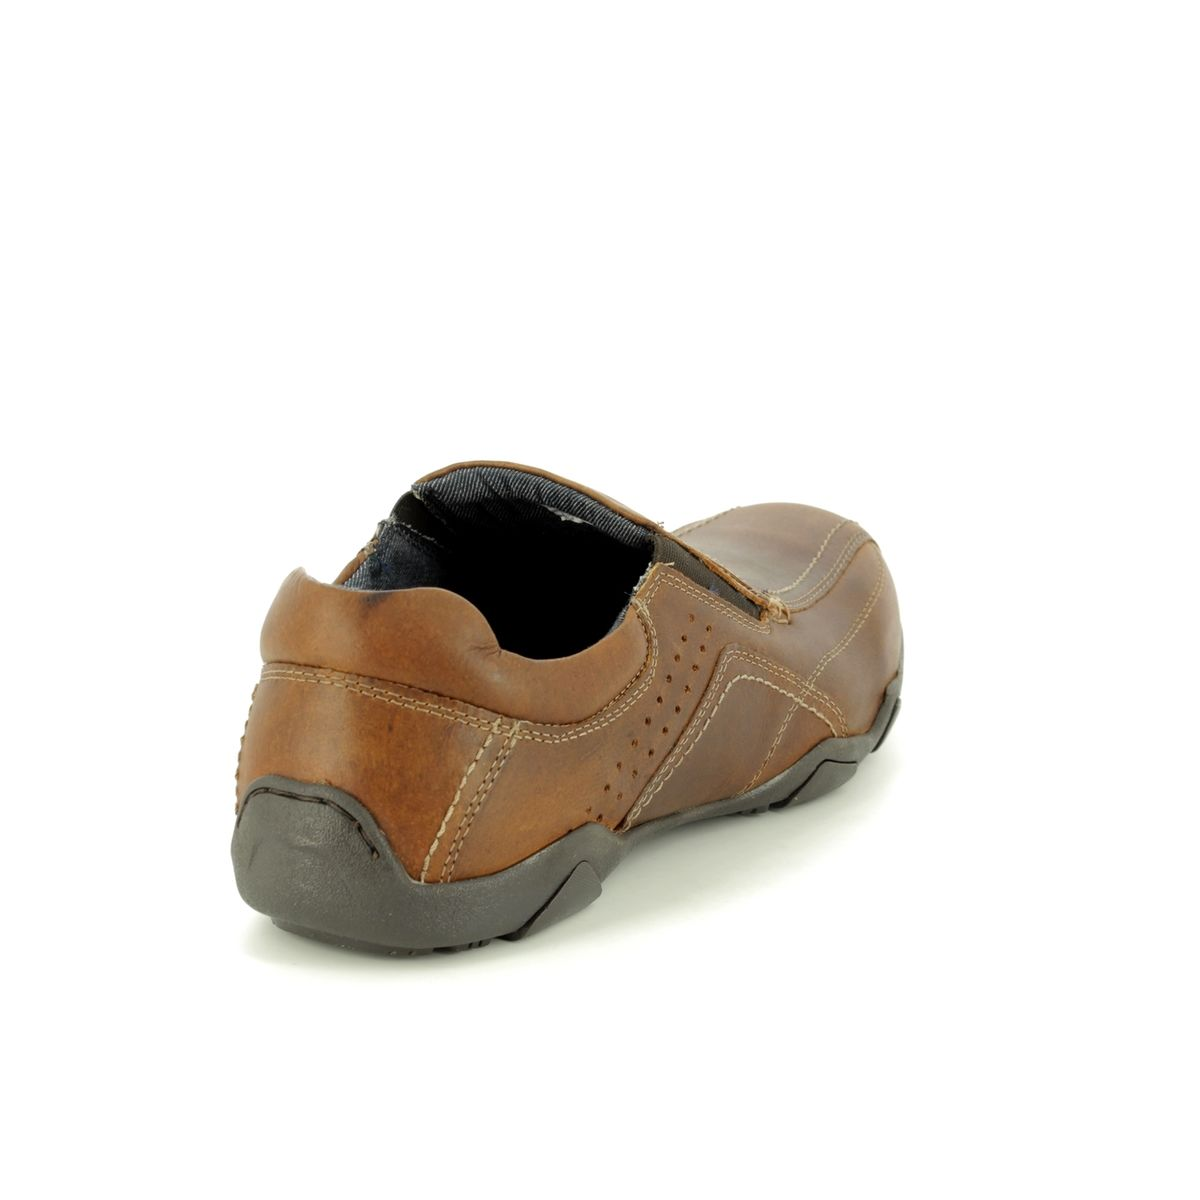 0f53489800 Red Tape Casual Shoes - Tan - 9104/11 DERWENT